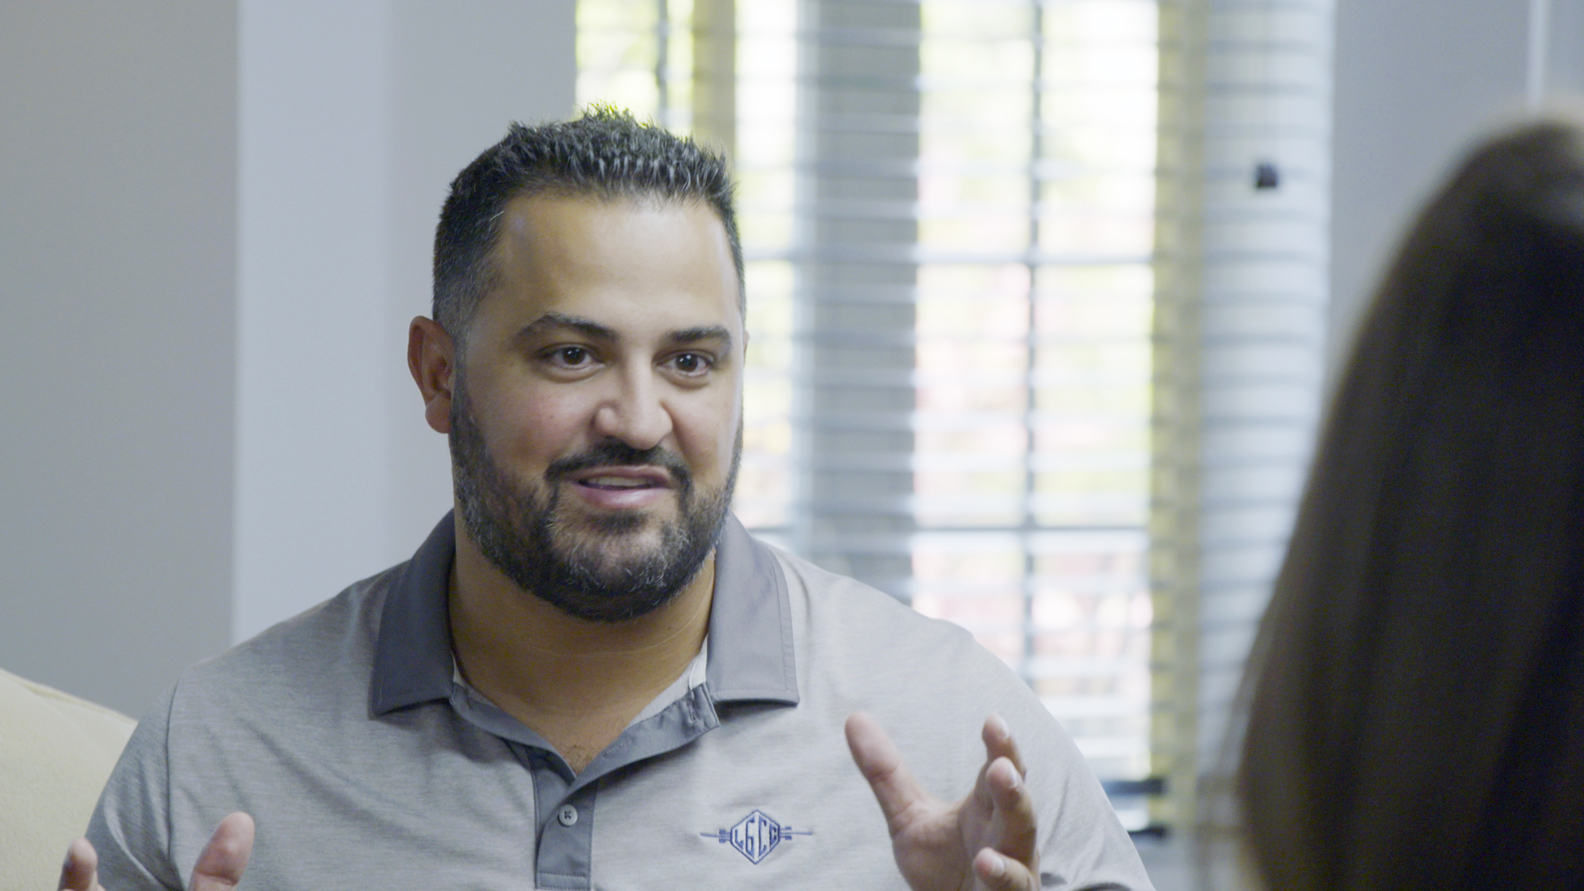 Steven Galanis, CEO & Co-Founder of Cameo